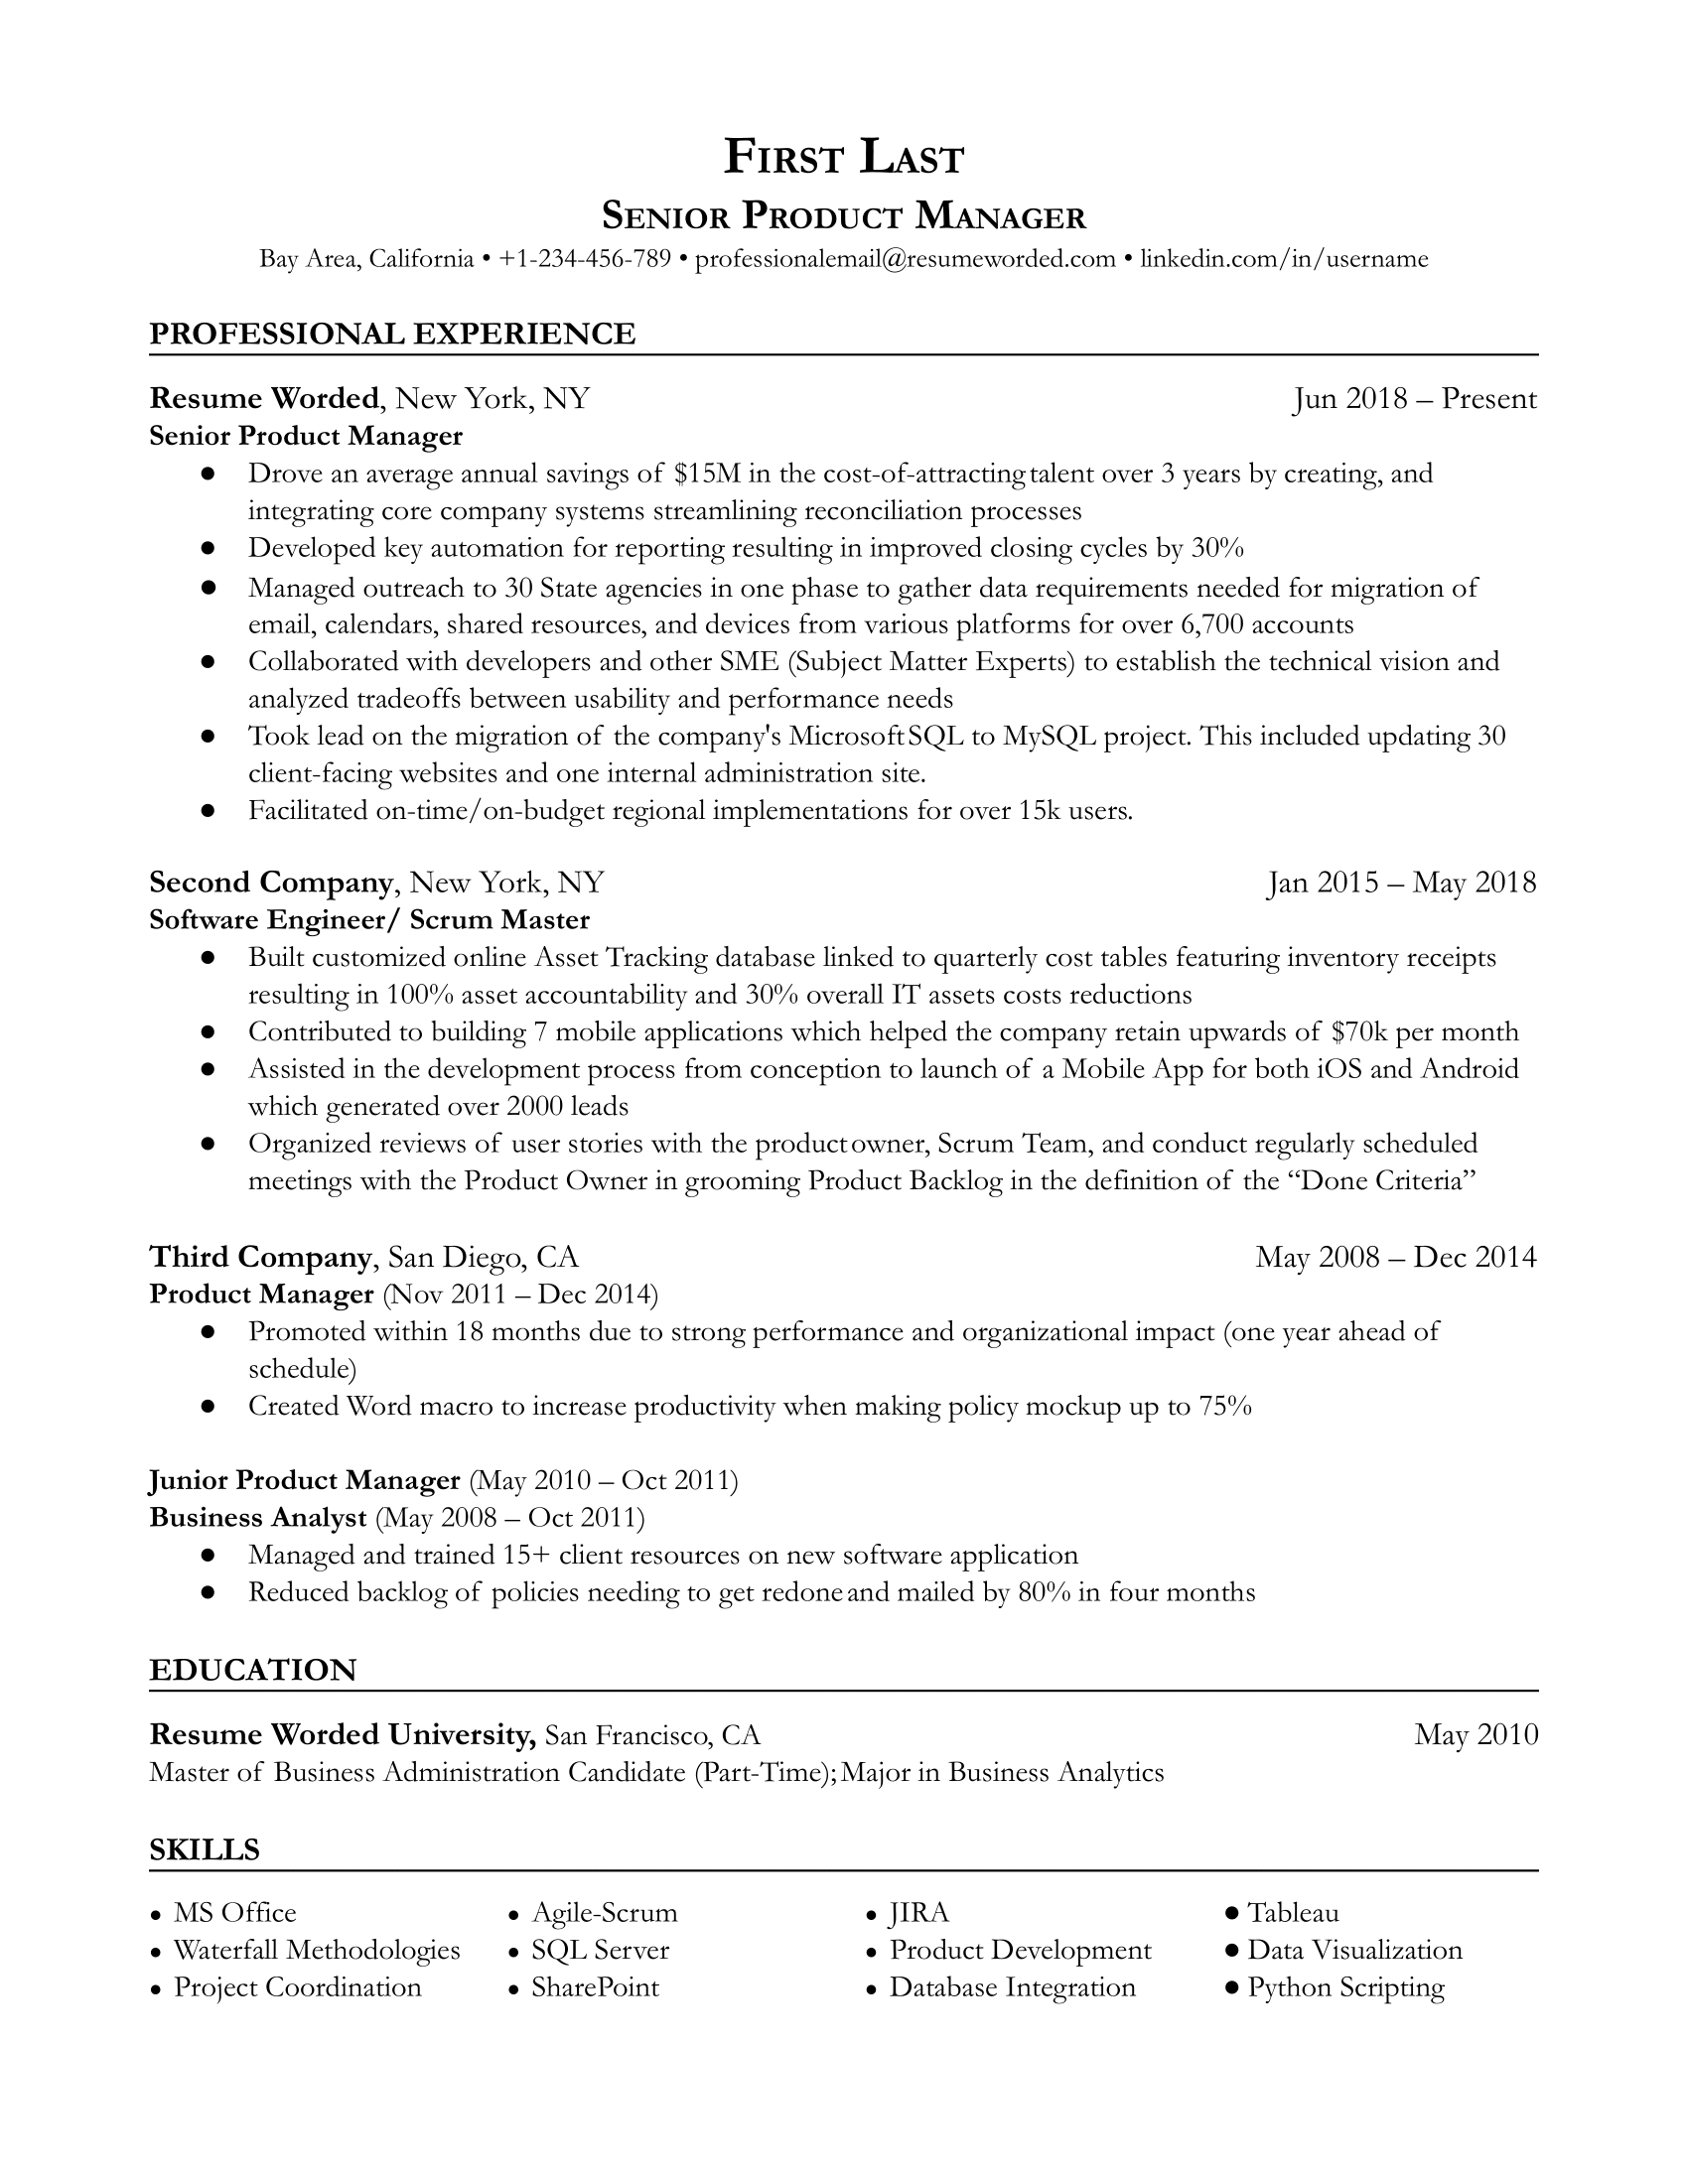 Senior Product Manager Resume Sample